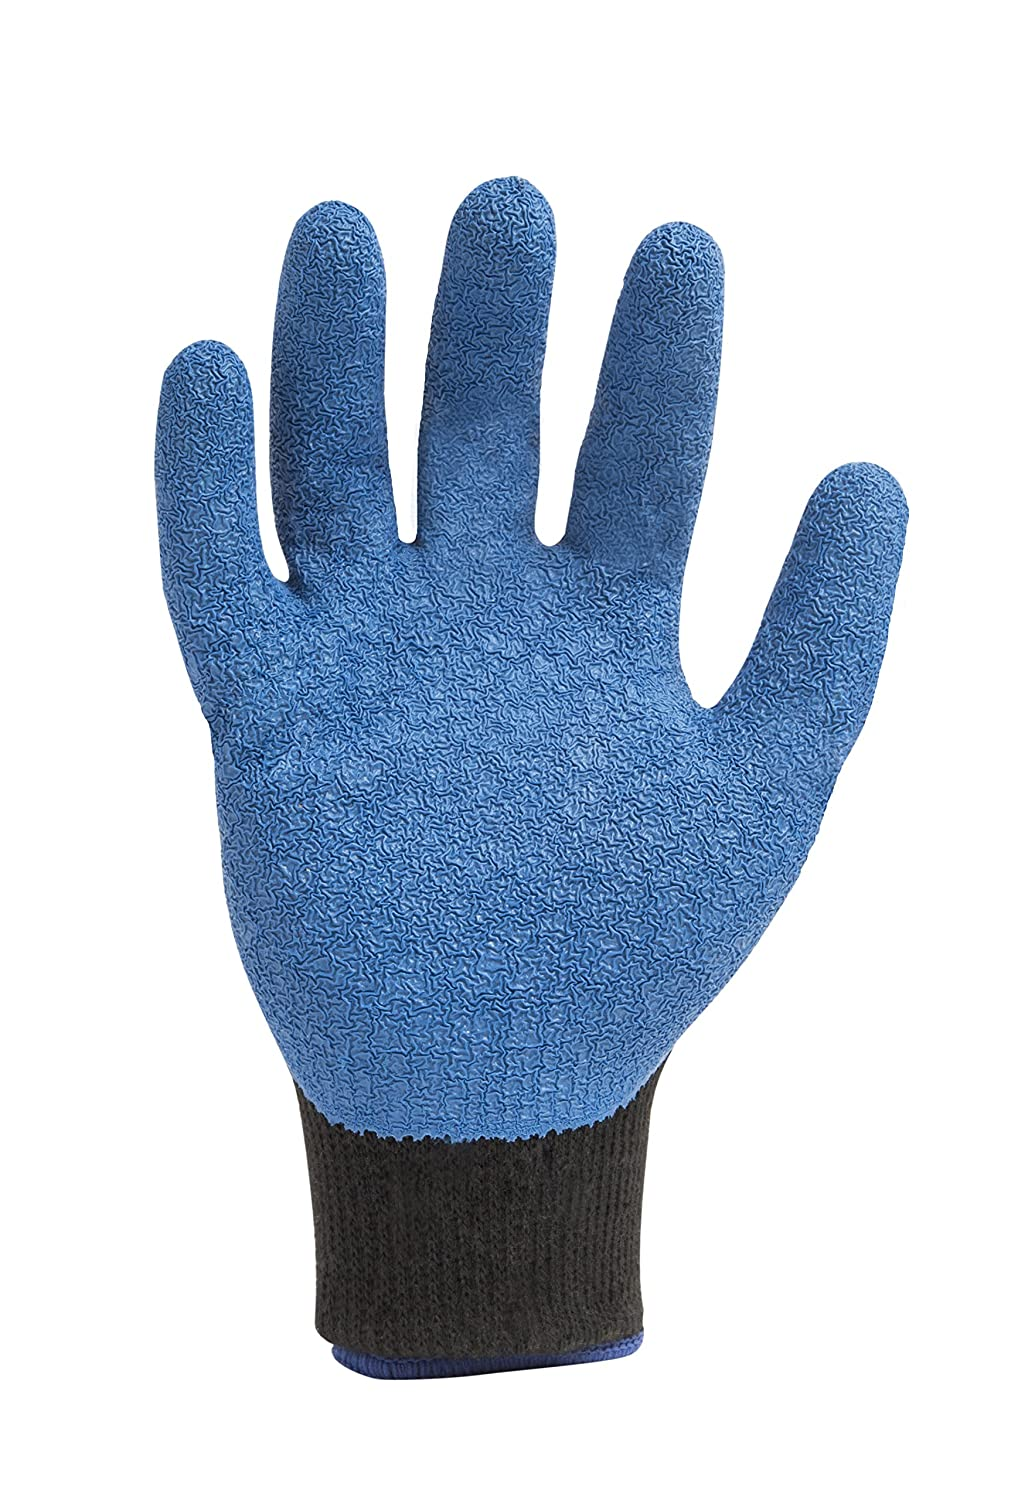 X-Large 212 Performance Gloves AXCRG-05-011PR AX360 Latex-dipped Crinkle Grip Gloves